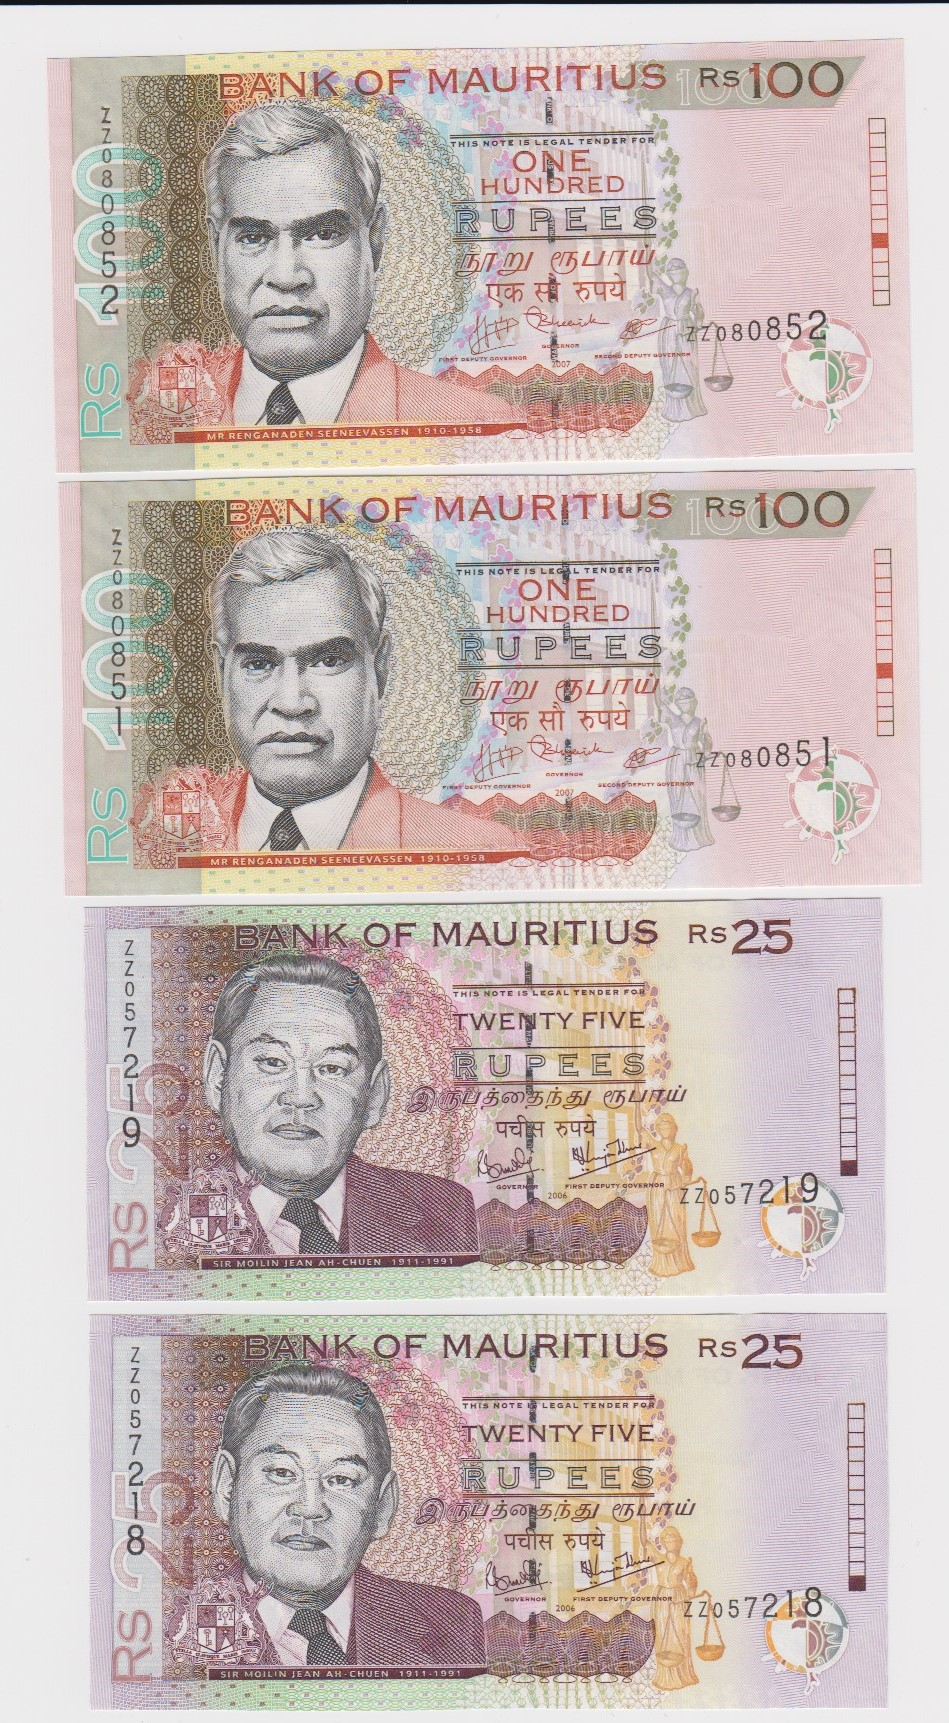 Mauritius REPLACEMENT notes (4), 100 rupees dated 2007 a consecutively numbered pair, serial ZZ